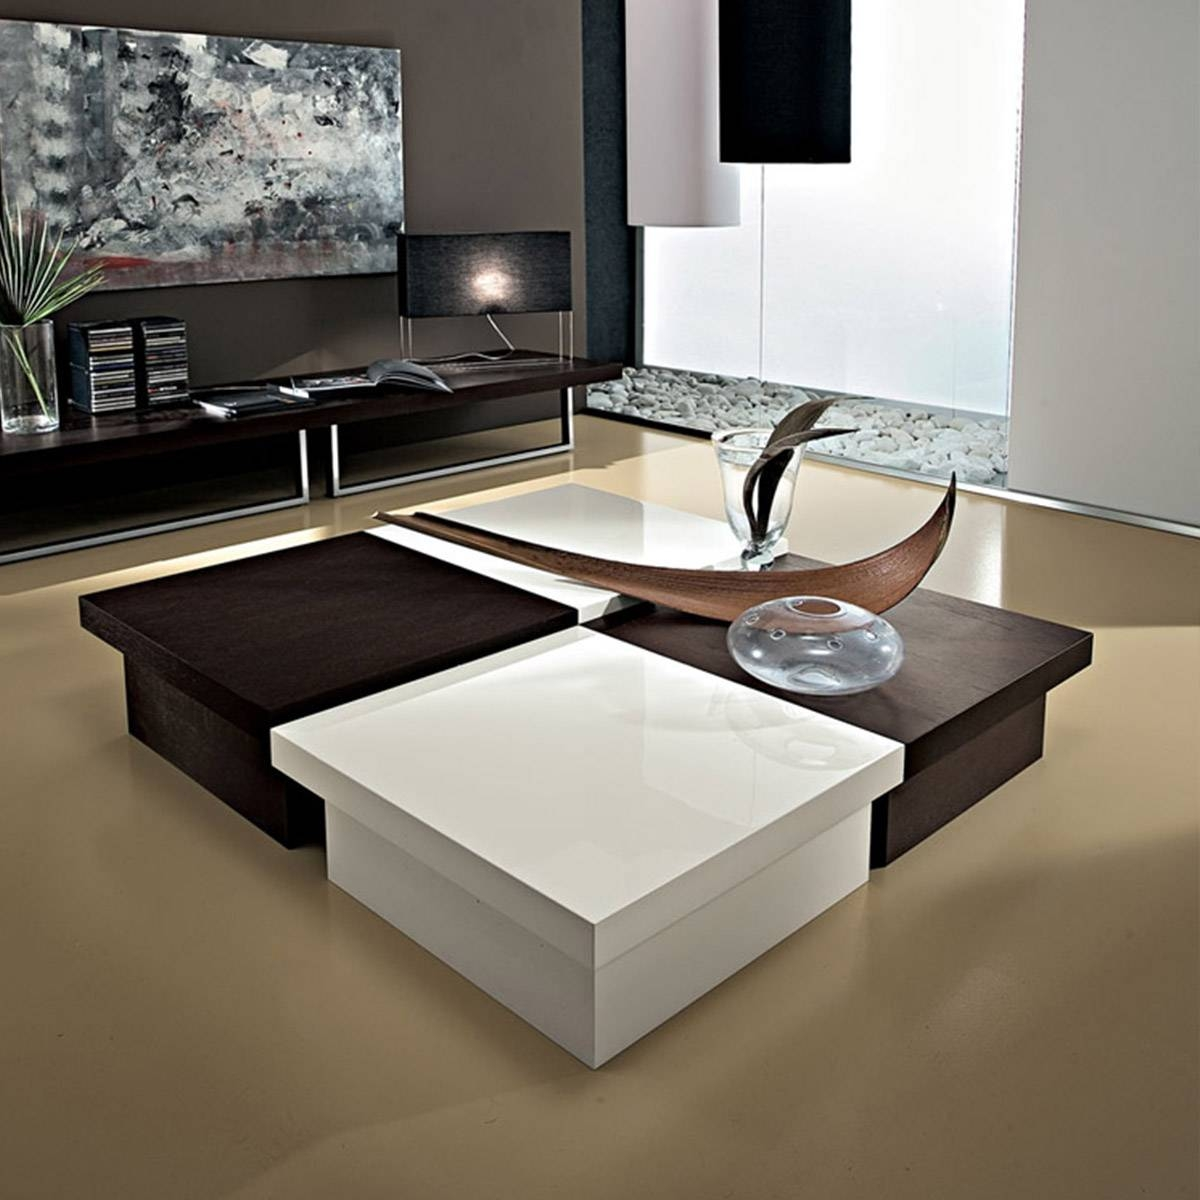 Available In Wood Veneer Or Plain Colours, Square Storage Coffee within Square Coffee Table Storages (Image 1 of 30)